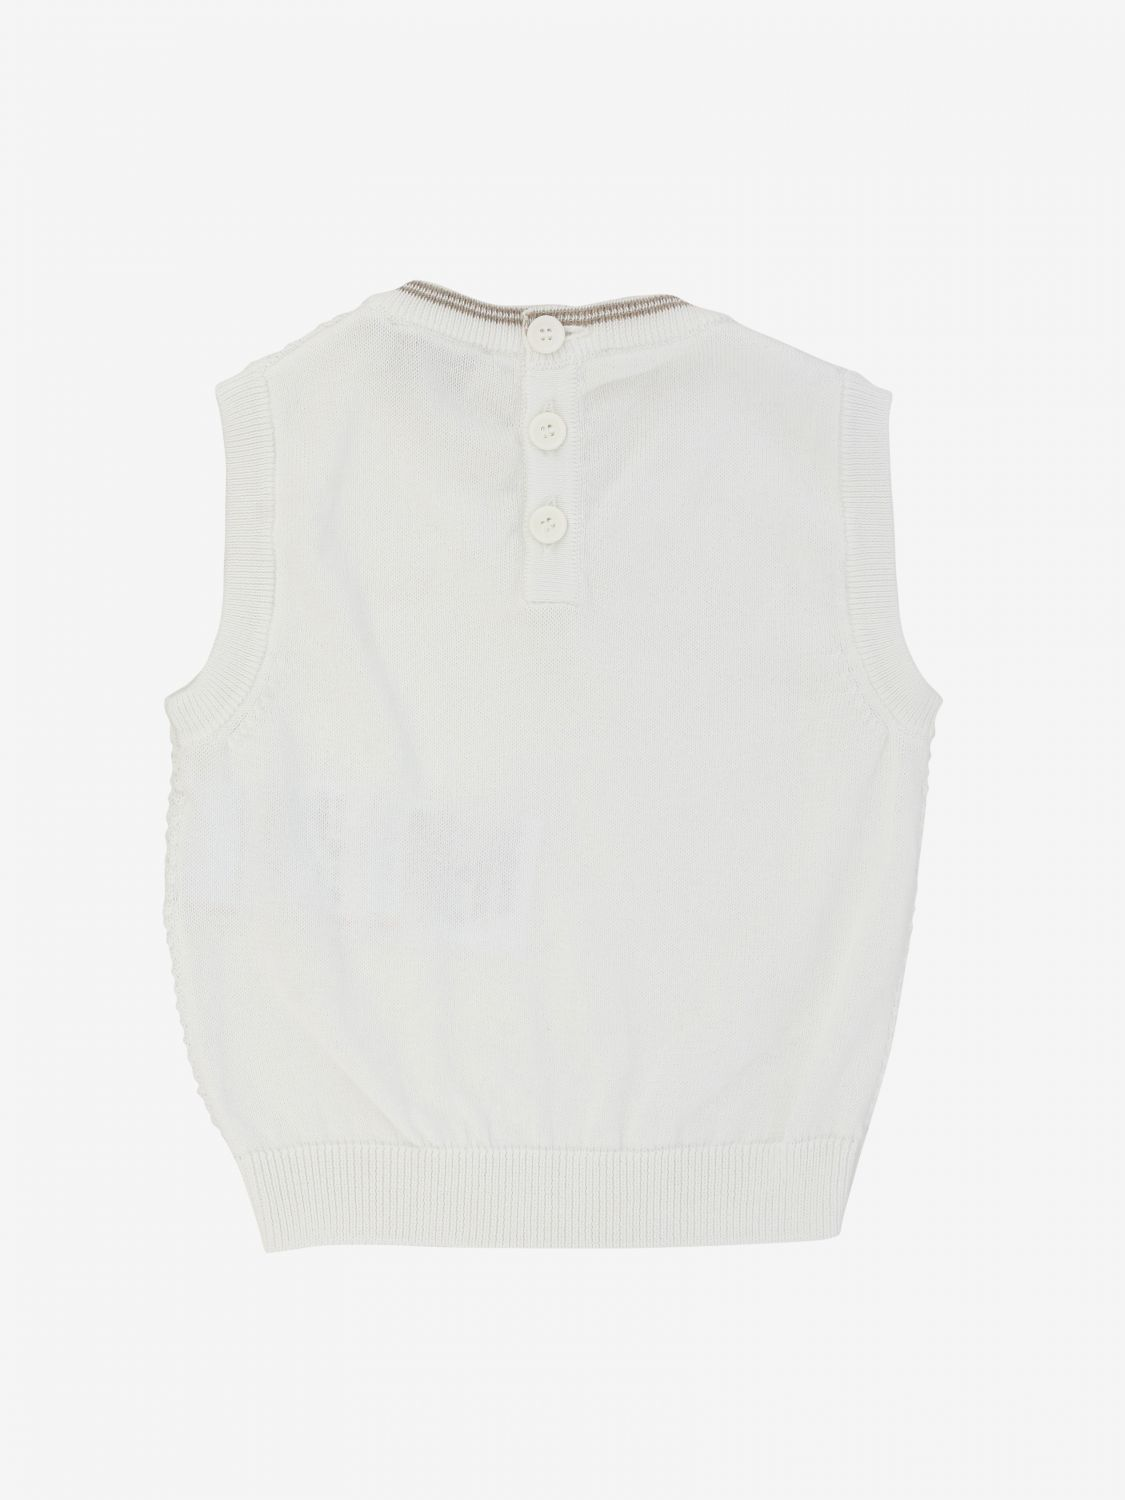 Emporio Armani vest with logo and striped edges white 2